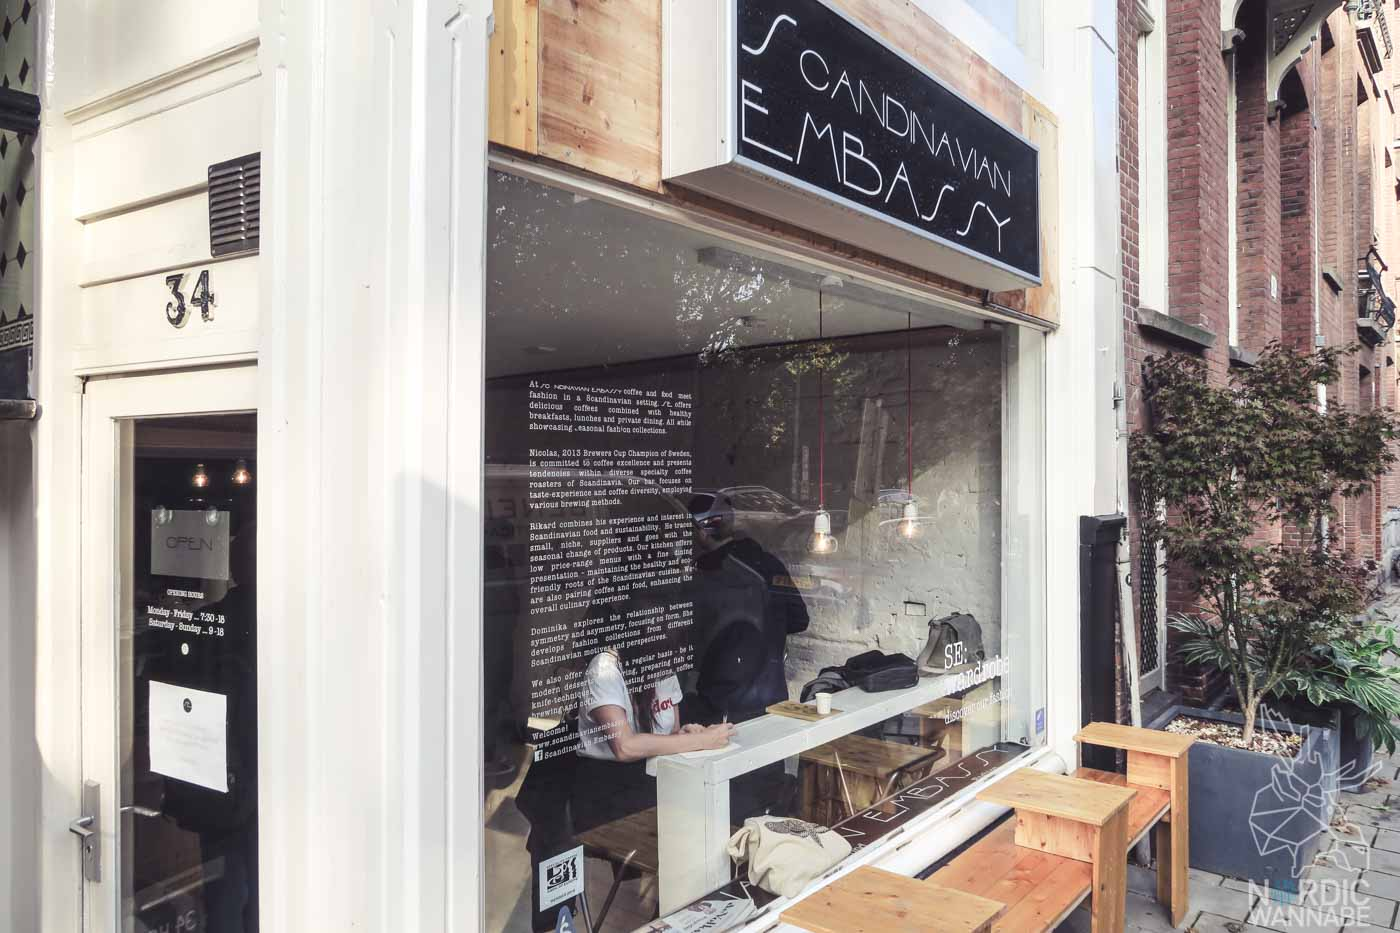 Skandinavisches Restaurant, Shop & Café in Amsterdam, Gård Nordic Kitchen, Scandinavian Embassy